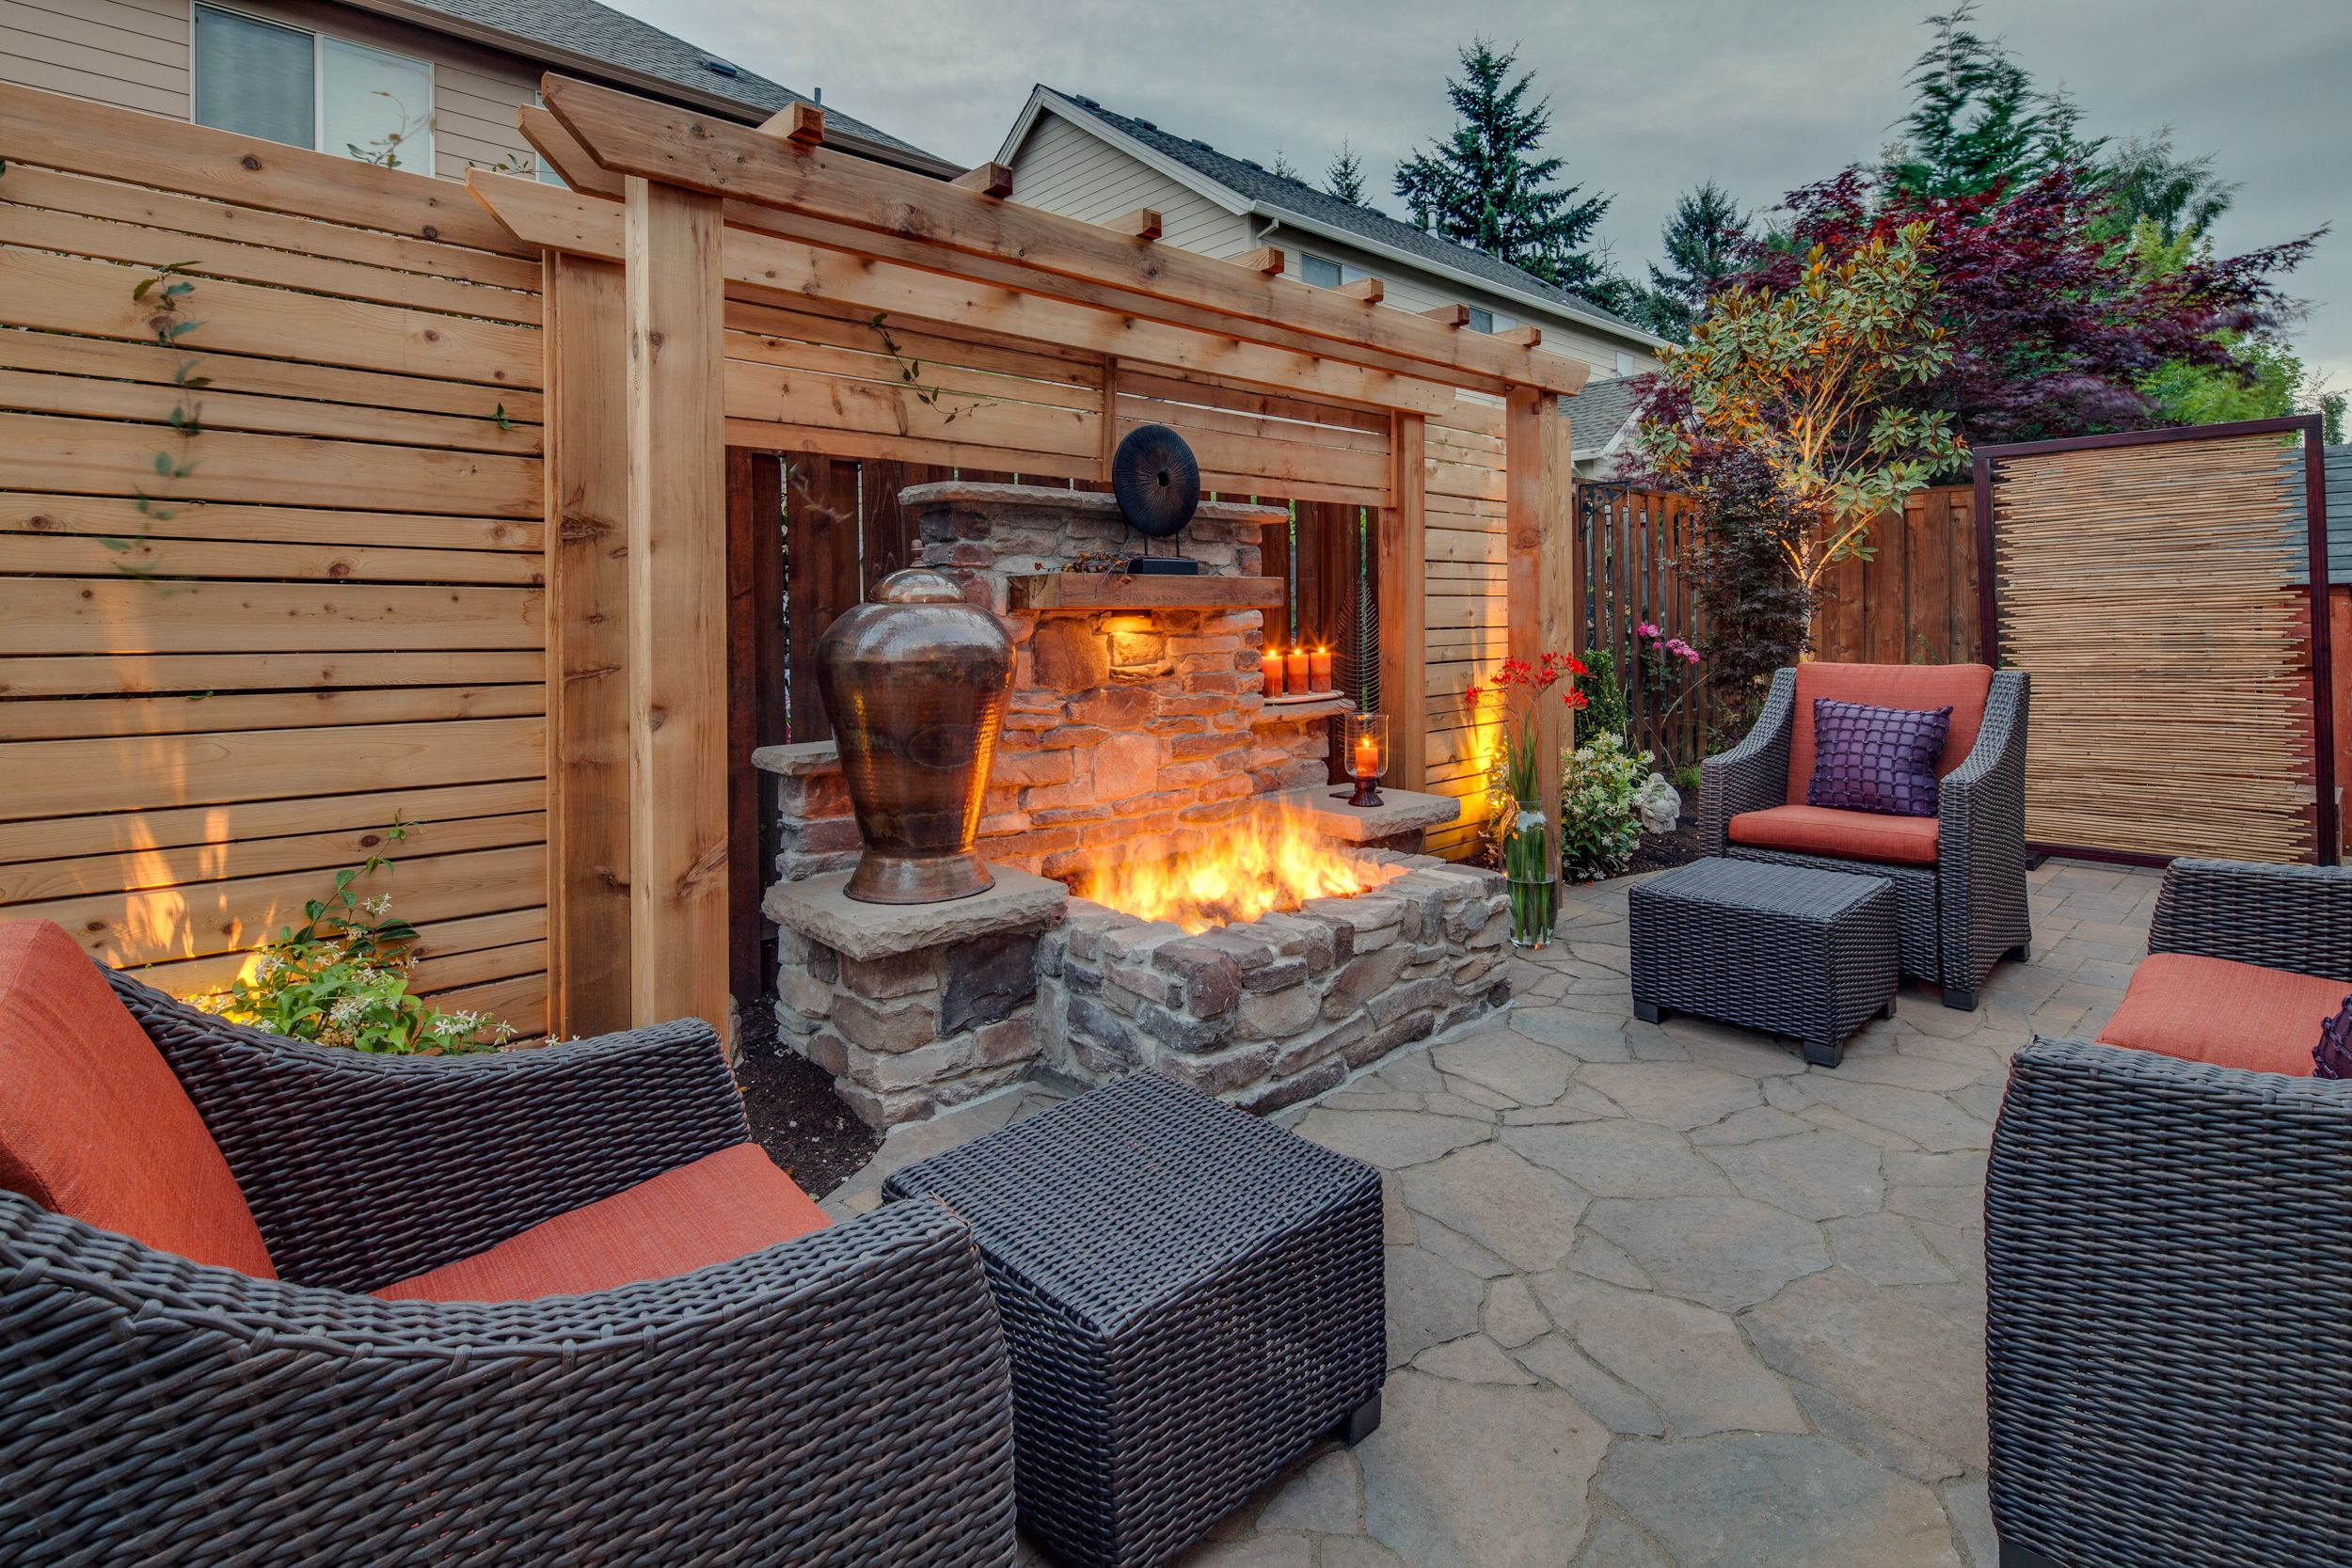 Private Backyard Retreat - fun for friends and family - | Exteriors ...